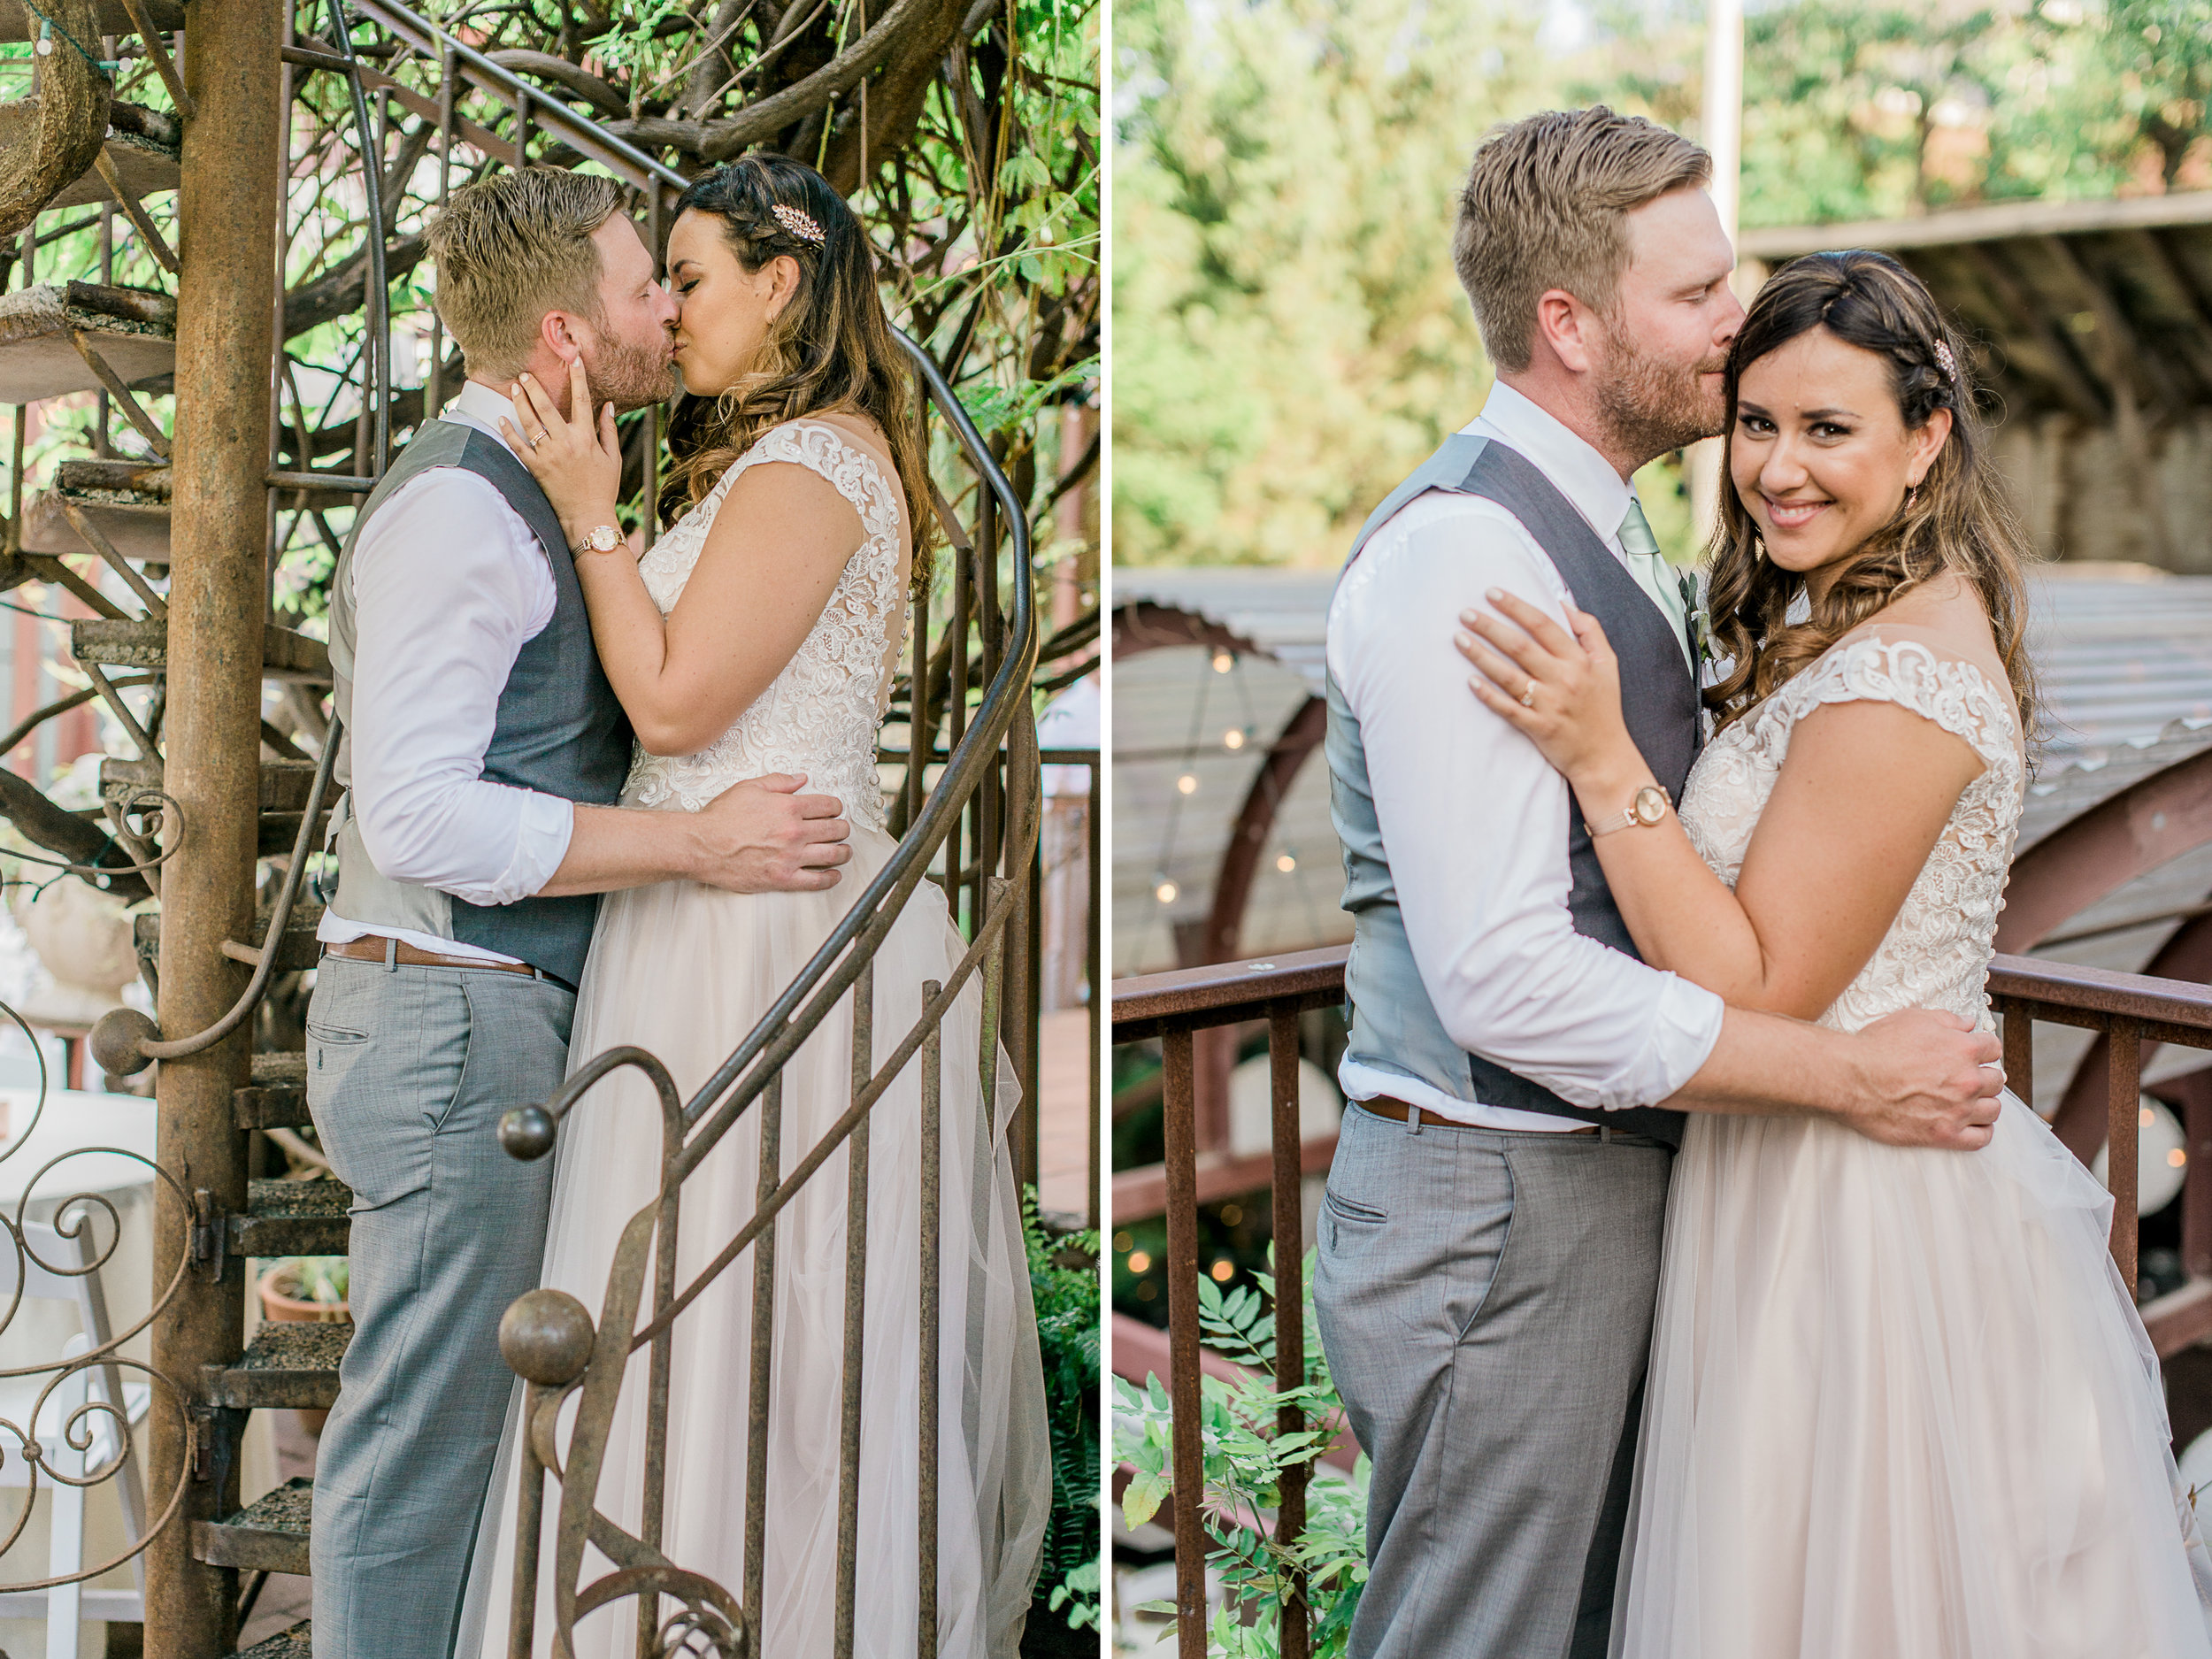 SmithWedding_HoustonTexasWeddingPhotographer_LightandAiry_FilmPhotographer_AvantGarden_HoustonHeightsWedding23.jpg